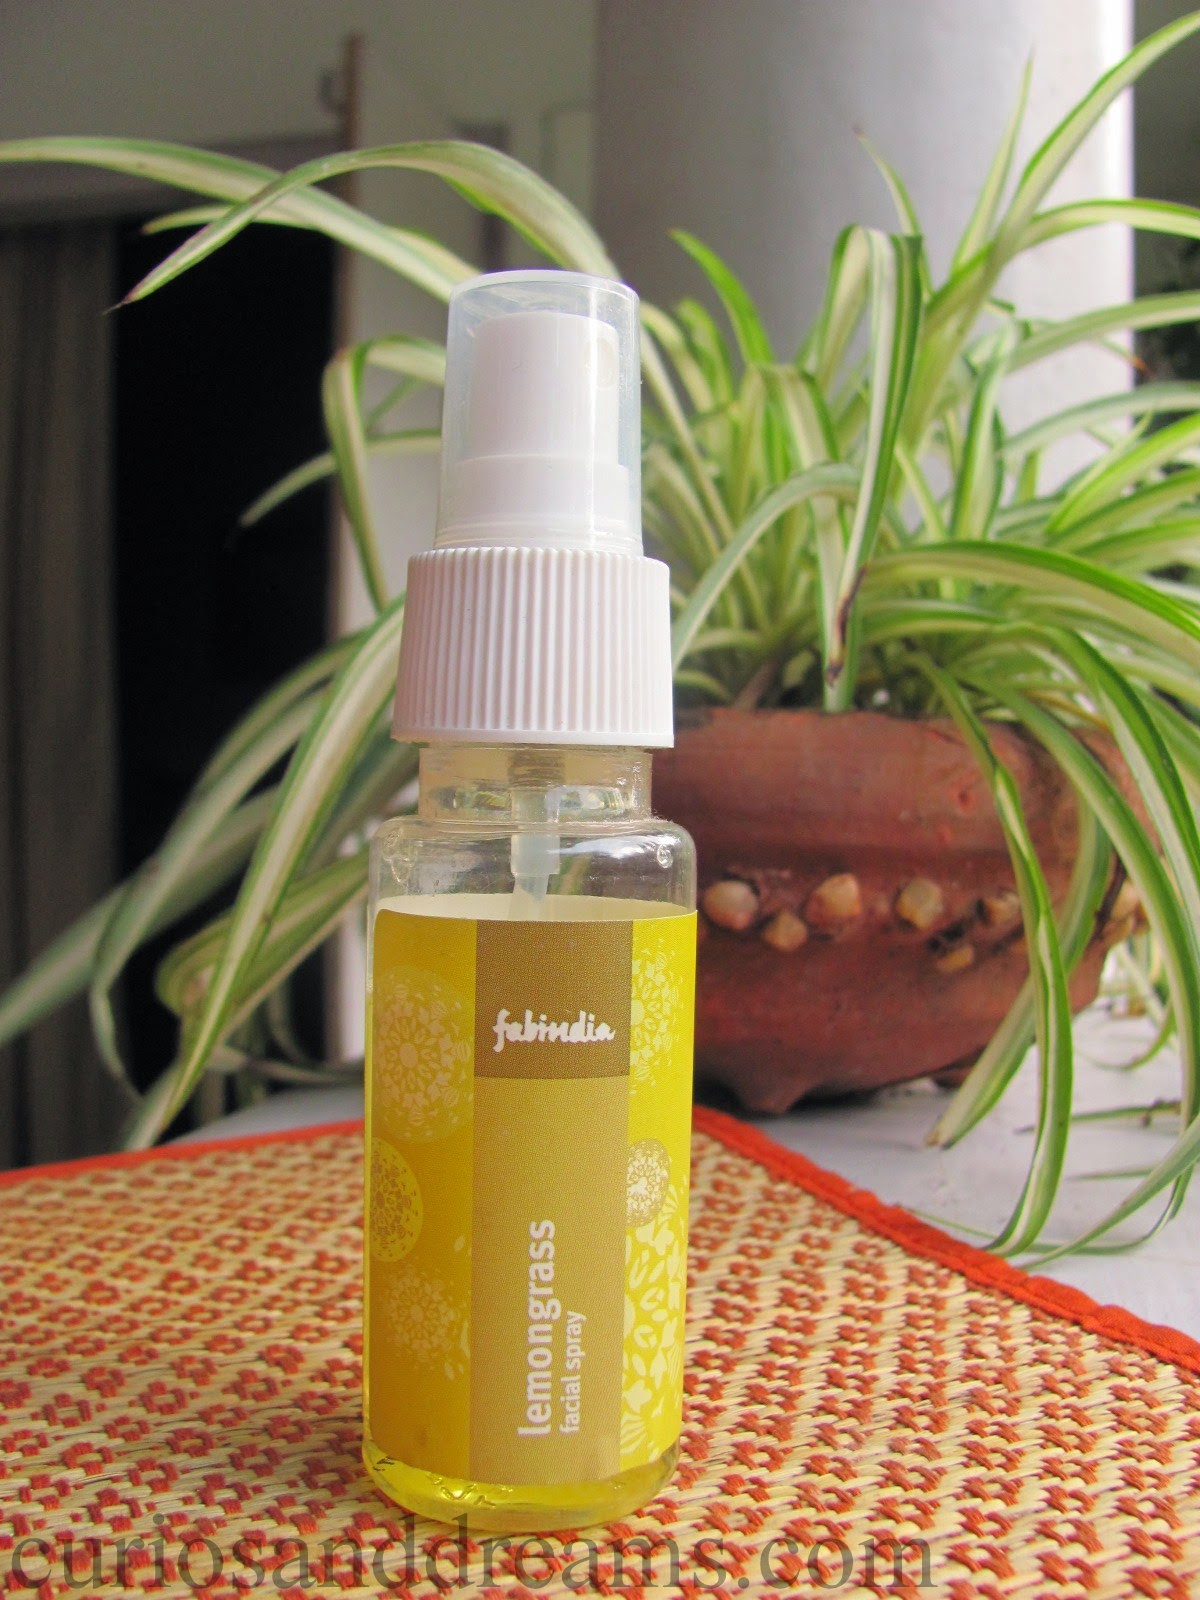 FabIndia Lemongrass Facial Spray review